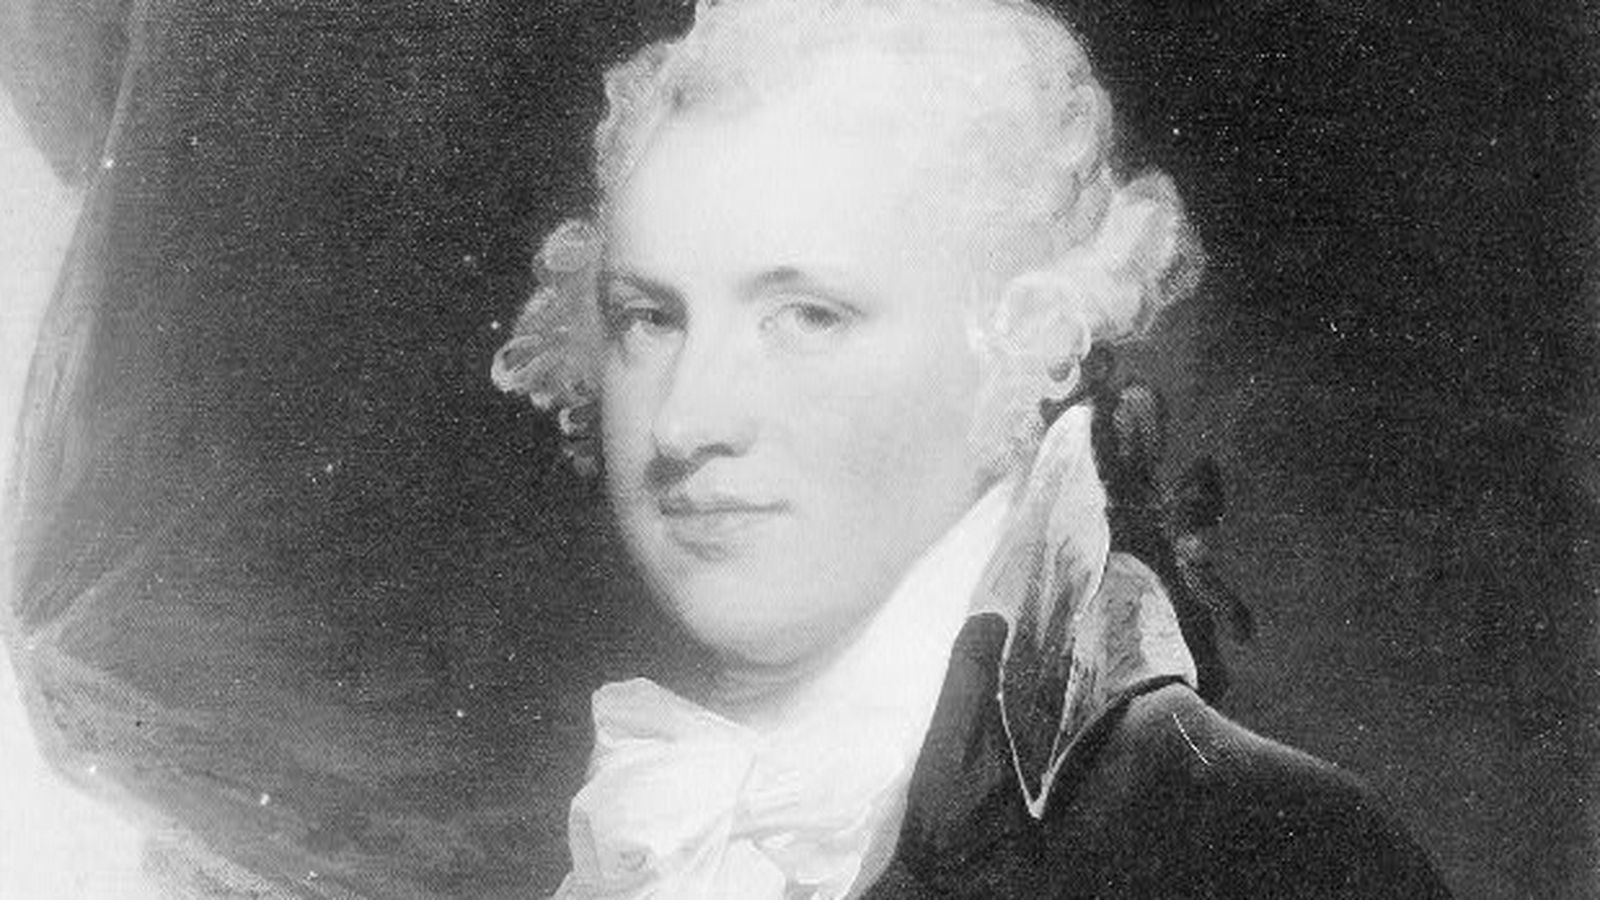 James_greenleaf___by_gilbert_stuart_in_1795___litho_from_1913.0